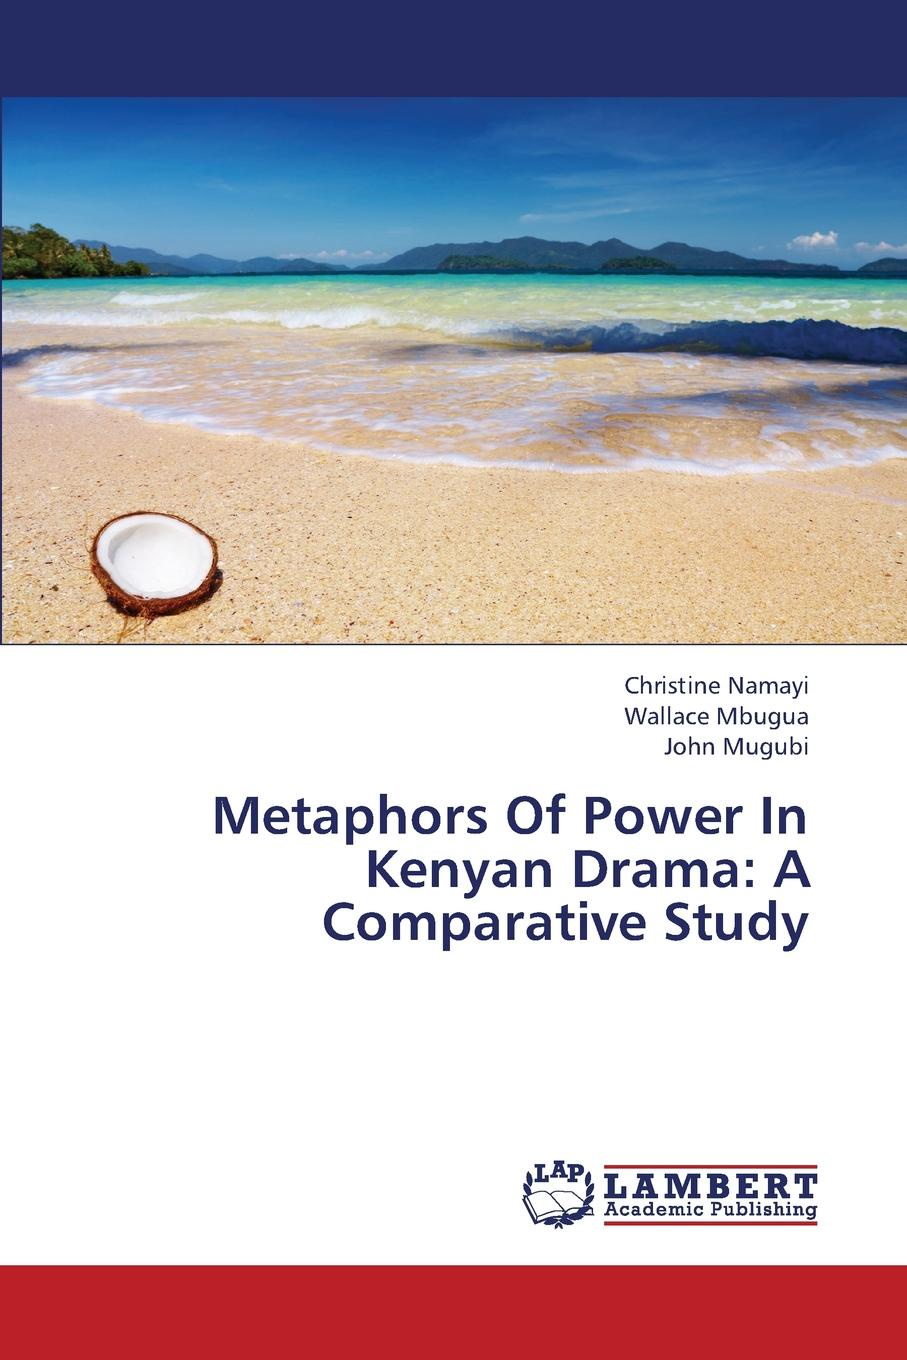 Namayi Christine, Mbugua Wallace, Mugubi John Metaphors of Power in Kenyan Drama. A Comparative Study the power to protect